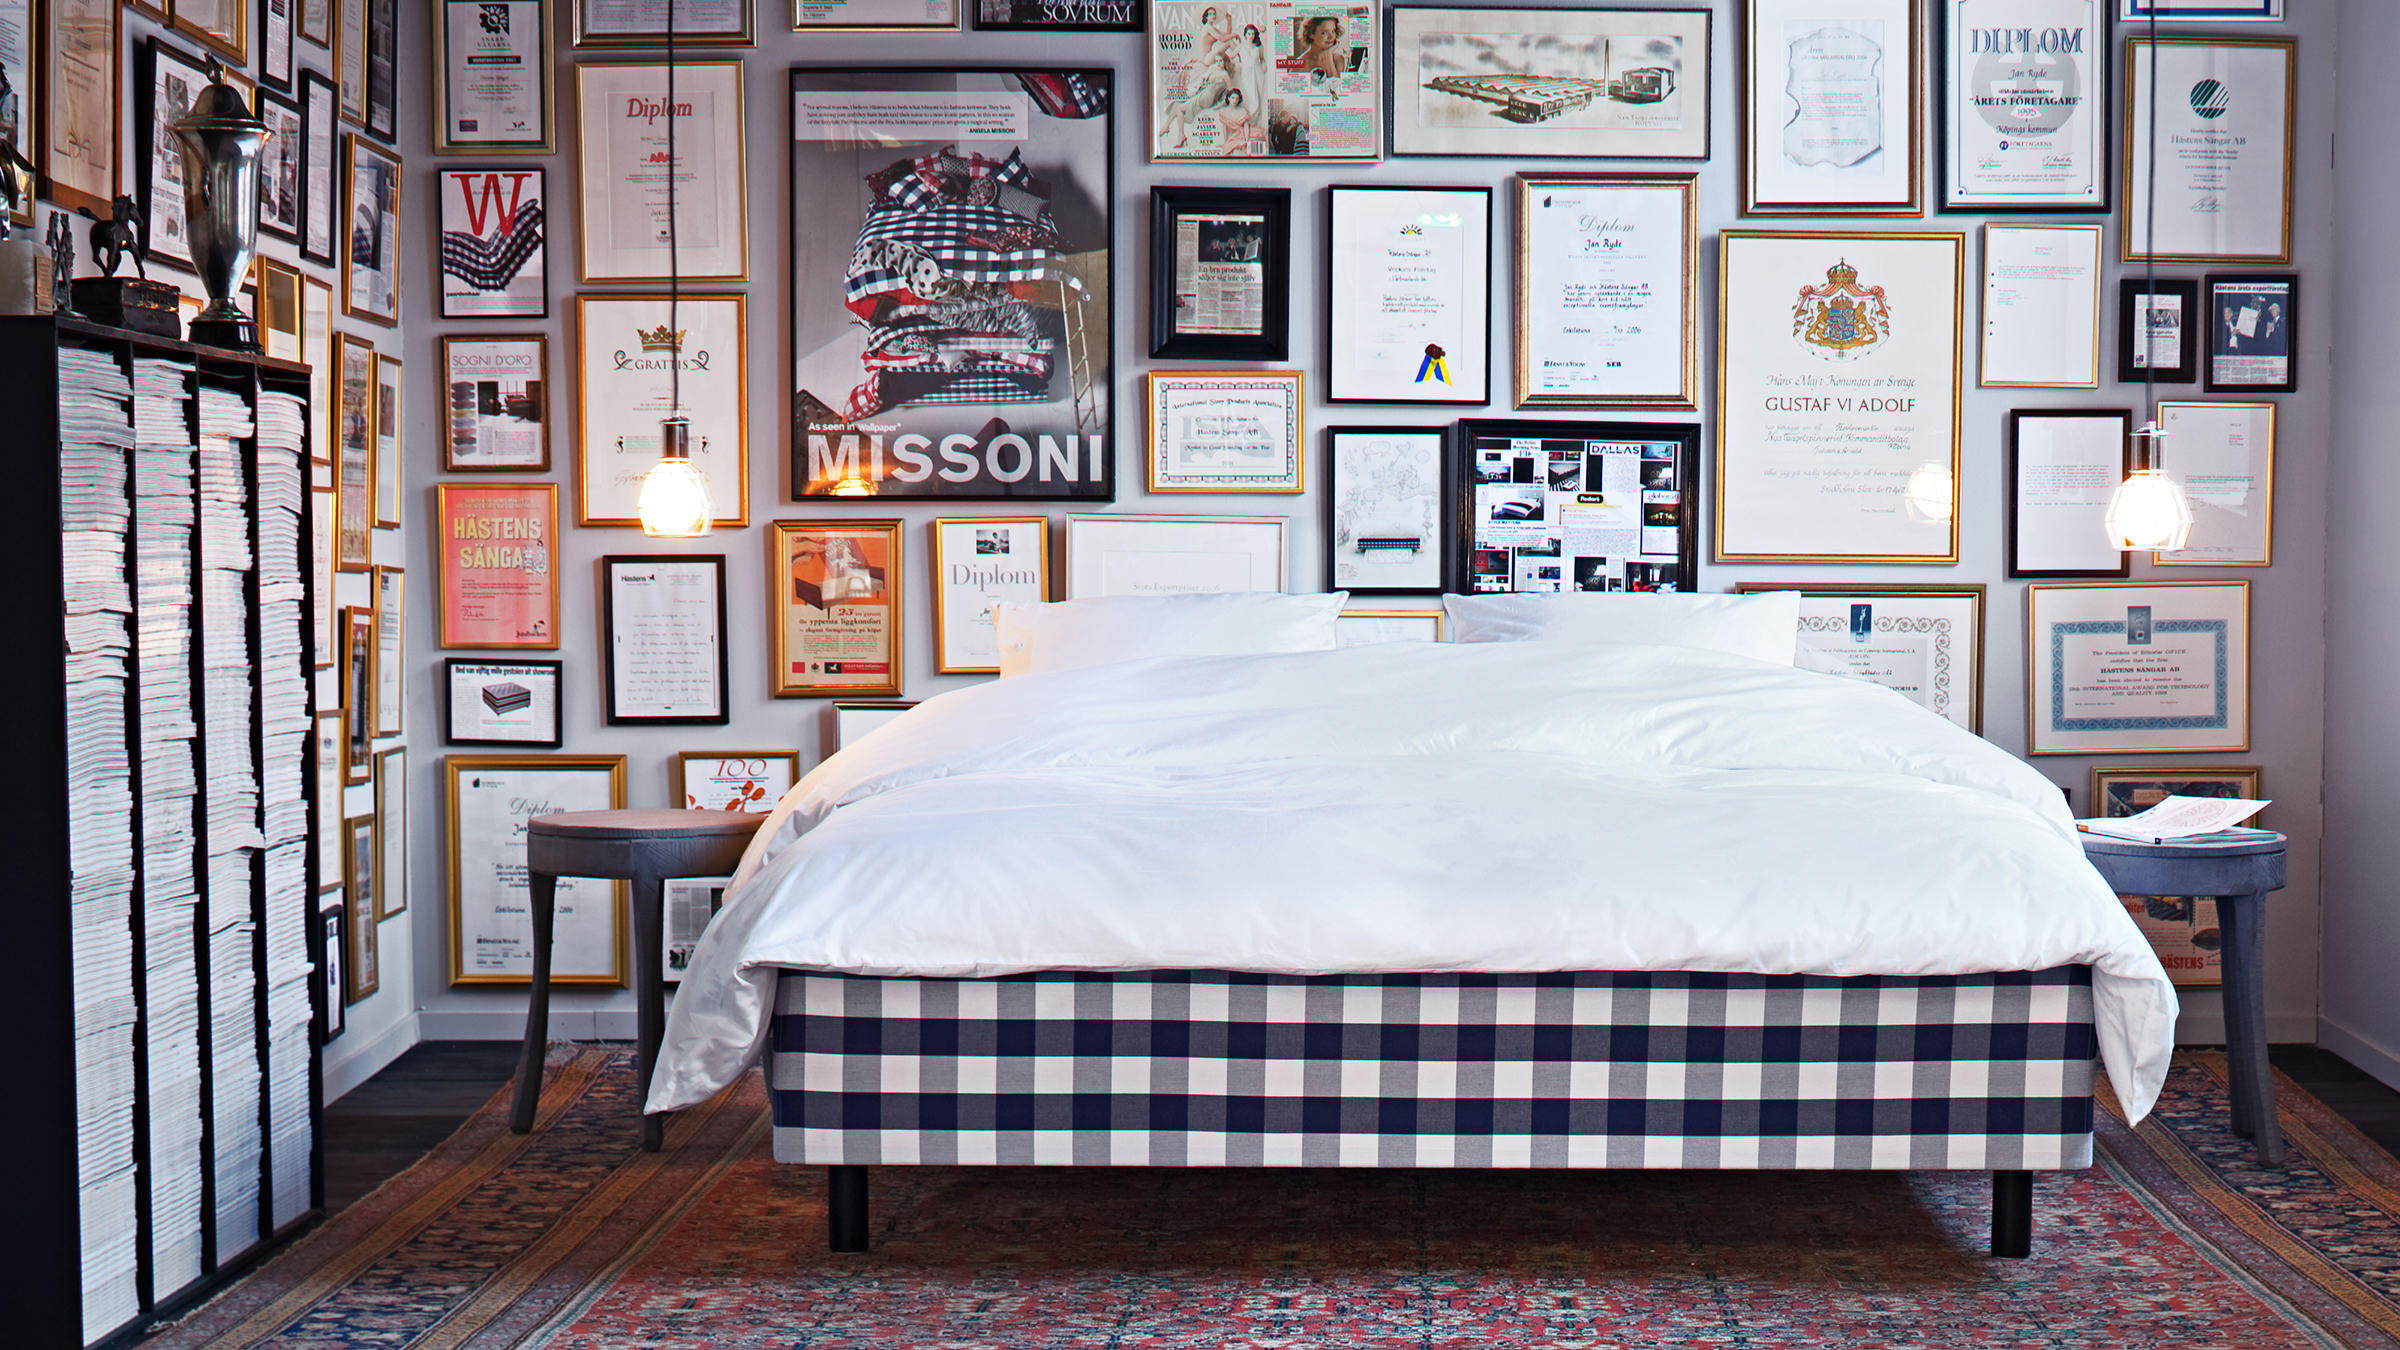 h stens marquis single beds from h stens architonic. Black Bedroom Furniture Sets. Home Design Ideas